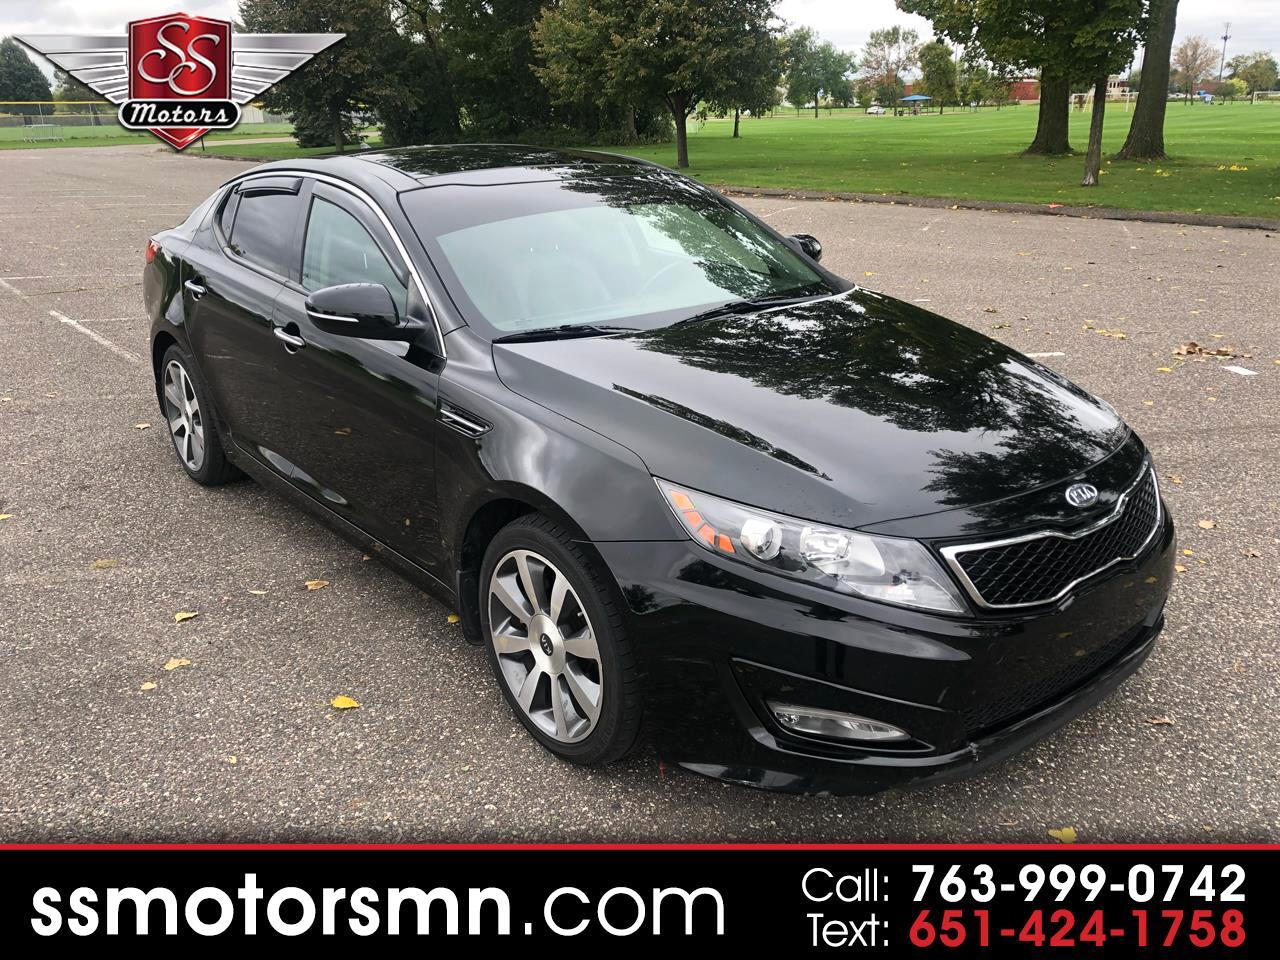 2011 Kia Optima 4dr Sdn SX Turbo